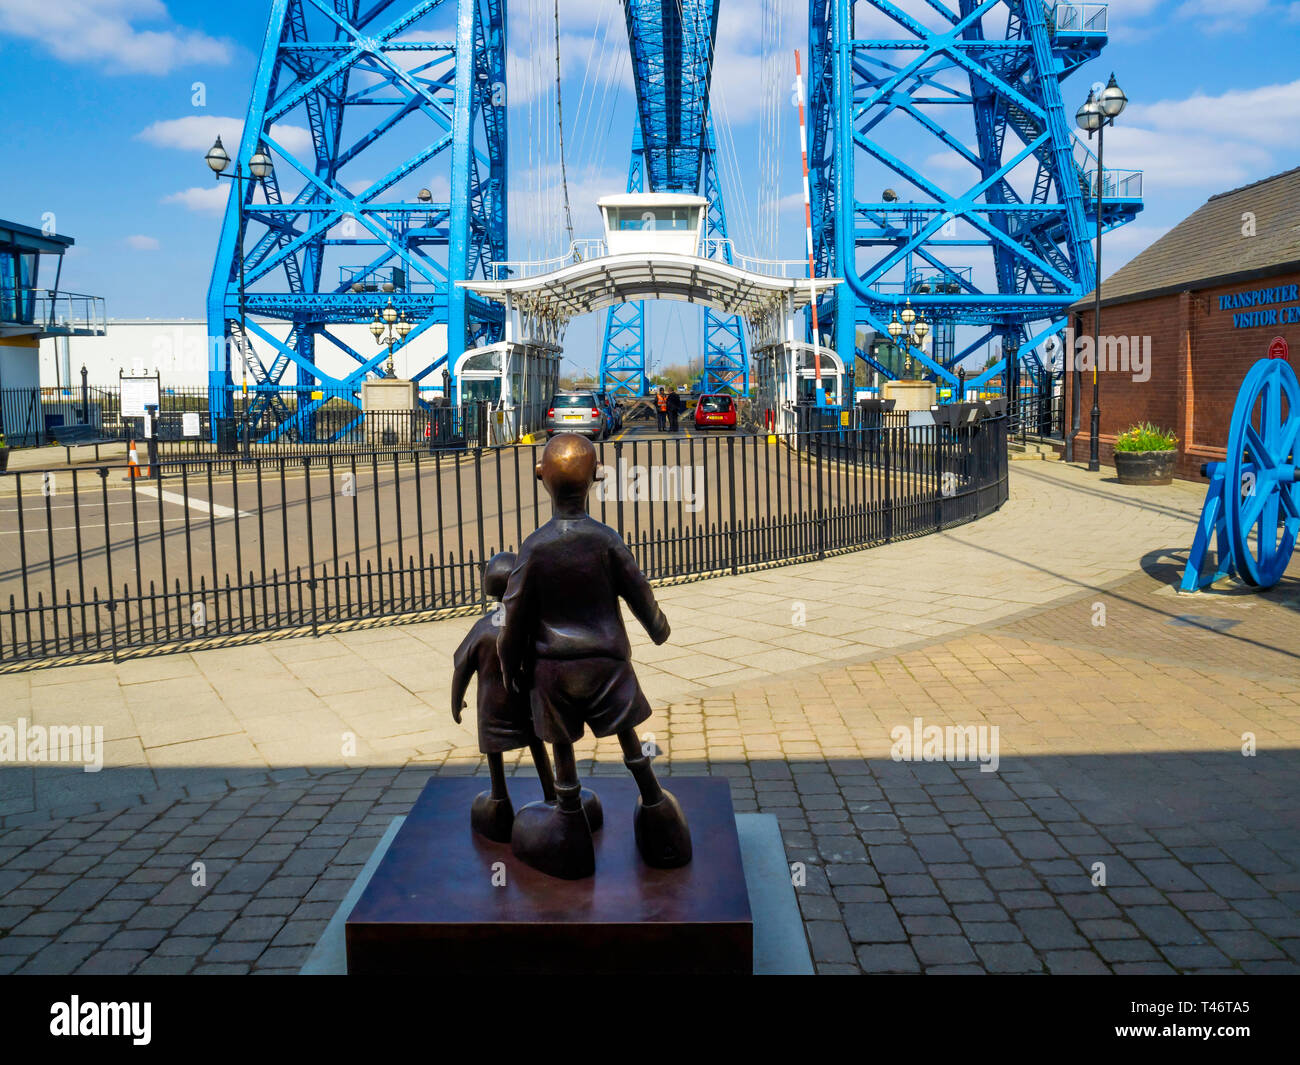 Life size bronze sculpture of two children 'Waiting for me dad' by local artist Mackenzie Thorpe at the Middlesbrough Transporter bridge - Stock Image